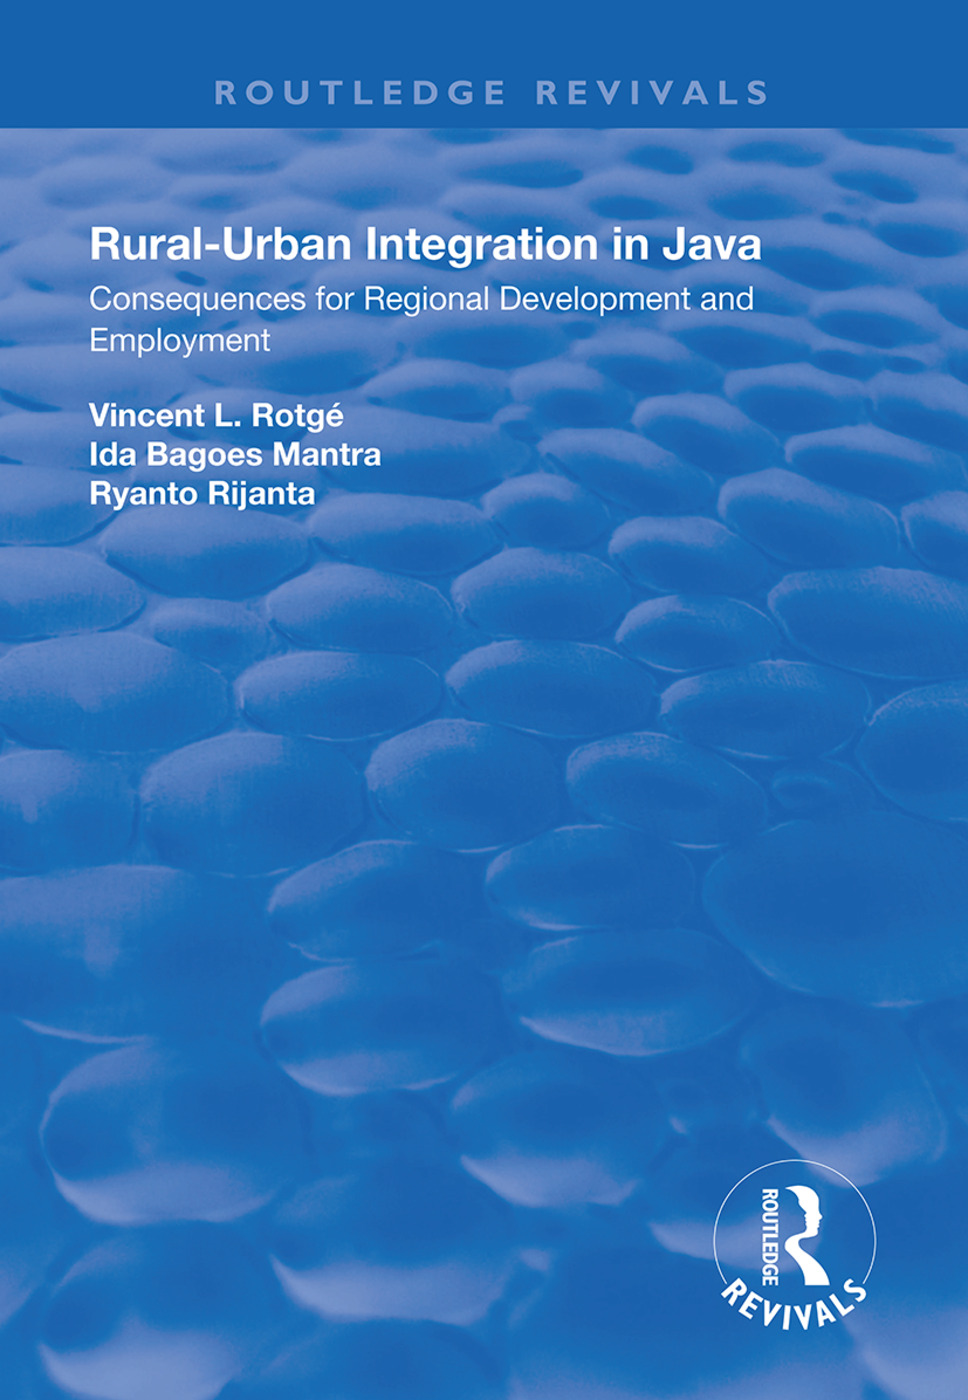 Rural-Urban Integration in Java: Consequences for Regional Development and Employemnt book cover